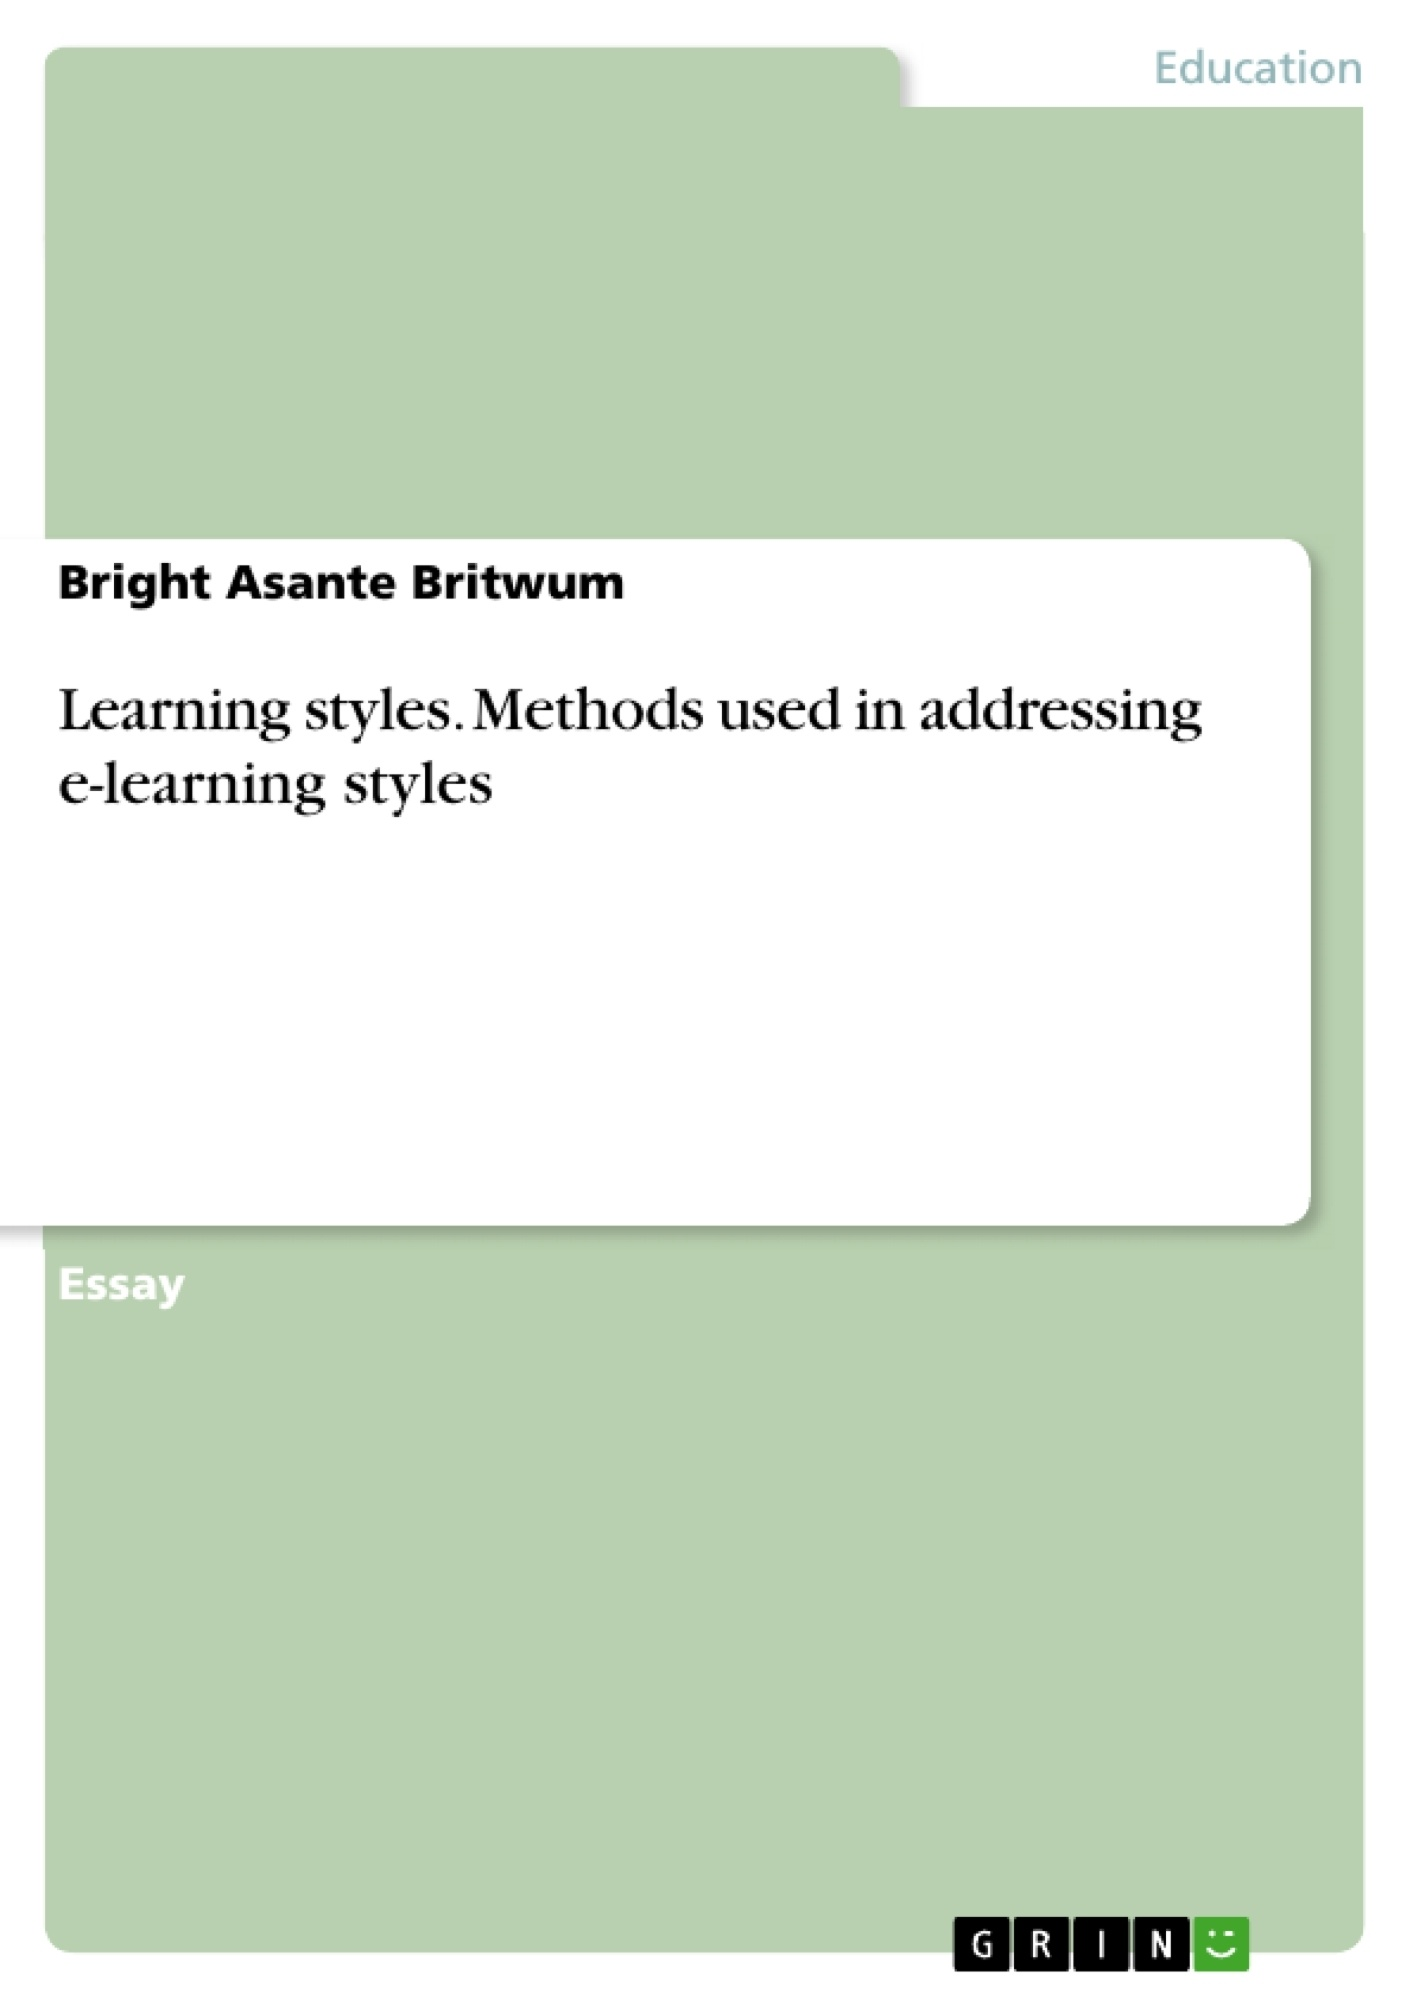 Title: Learning styles. Methods used in addressing e-learning styles